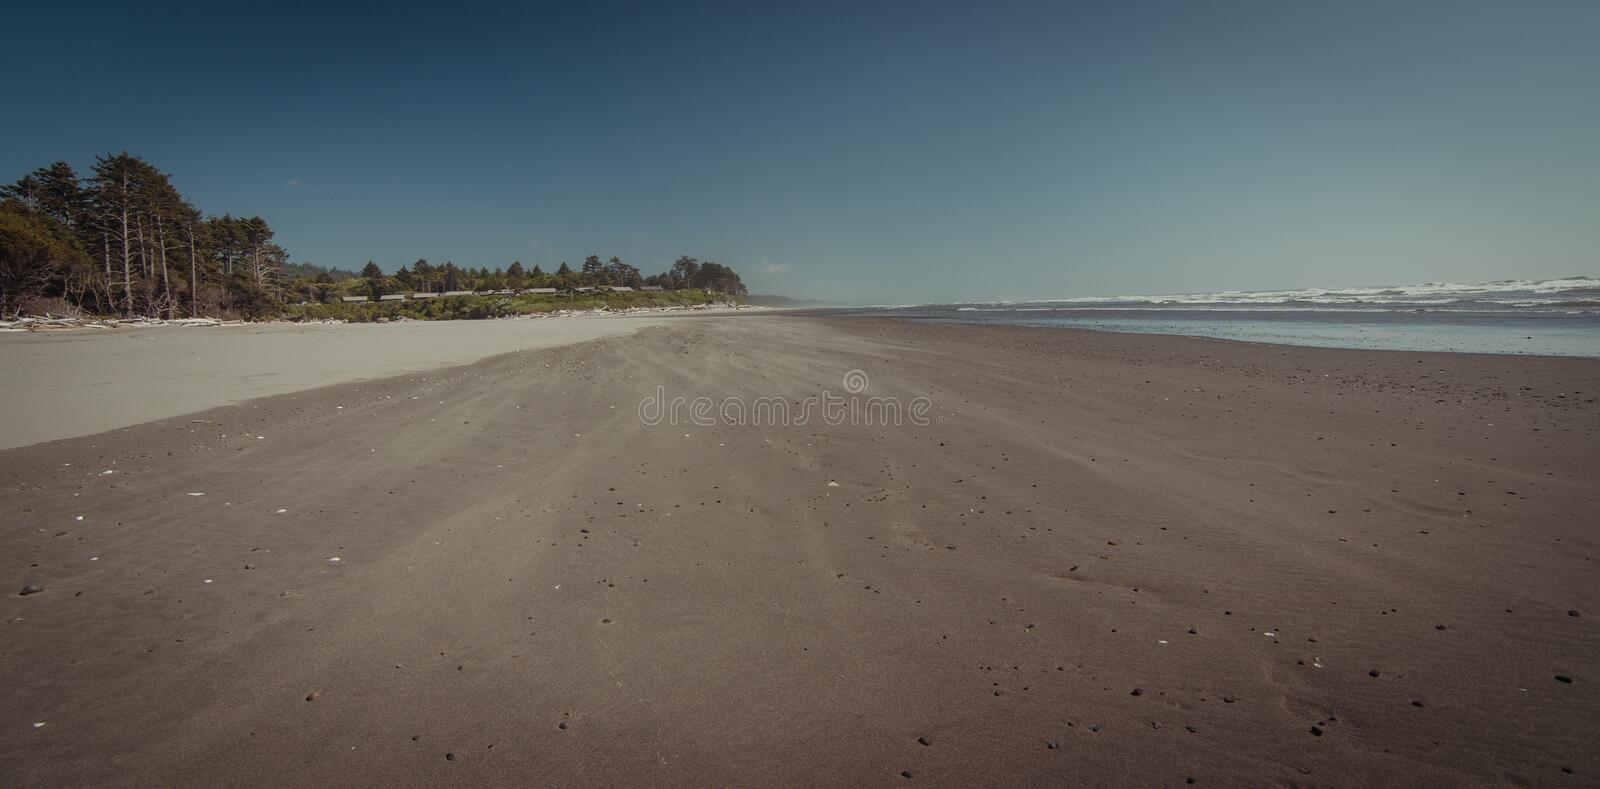 Empty beach with windy sand blowing. Down the beach royalty free stock photo